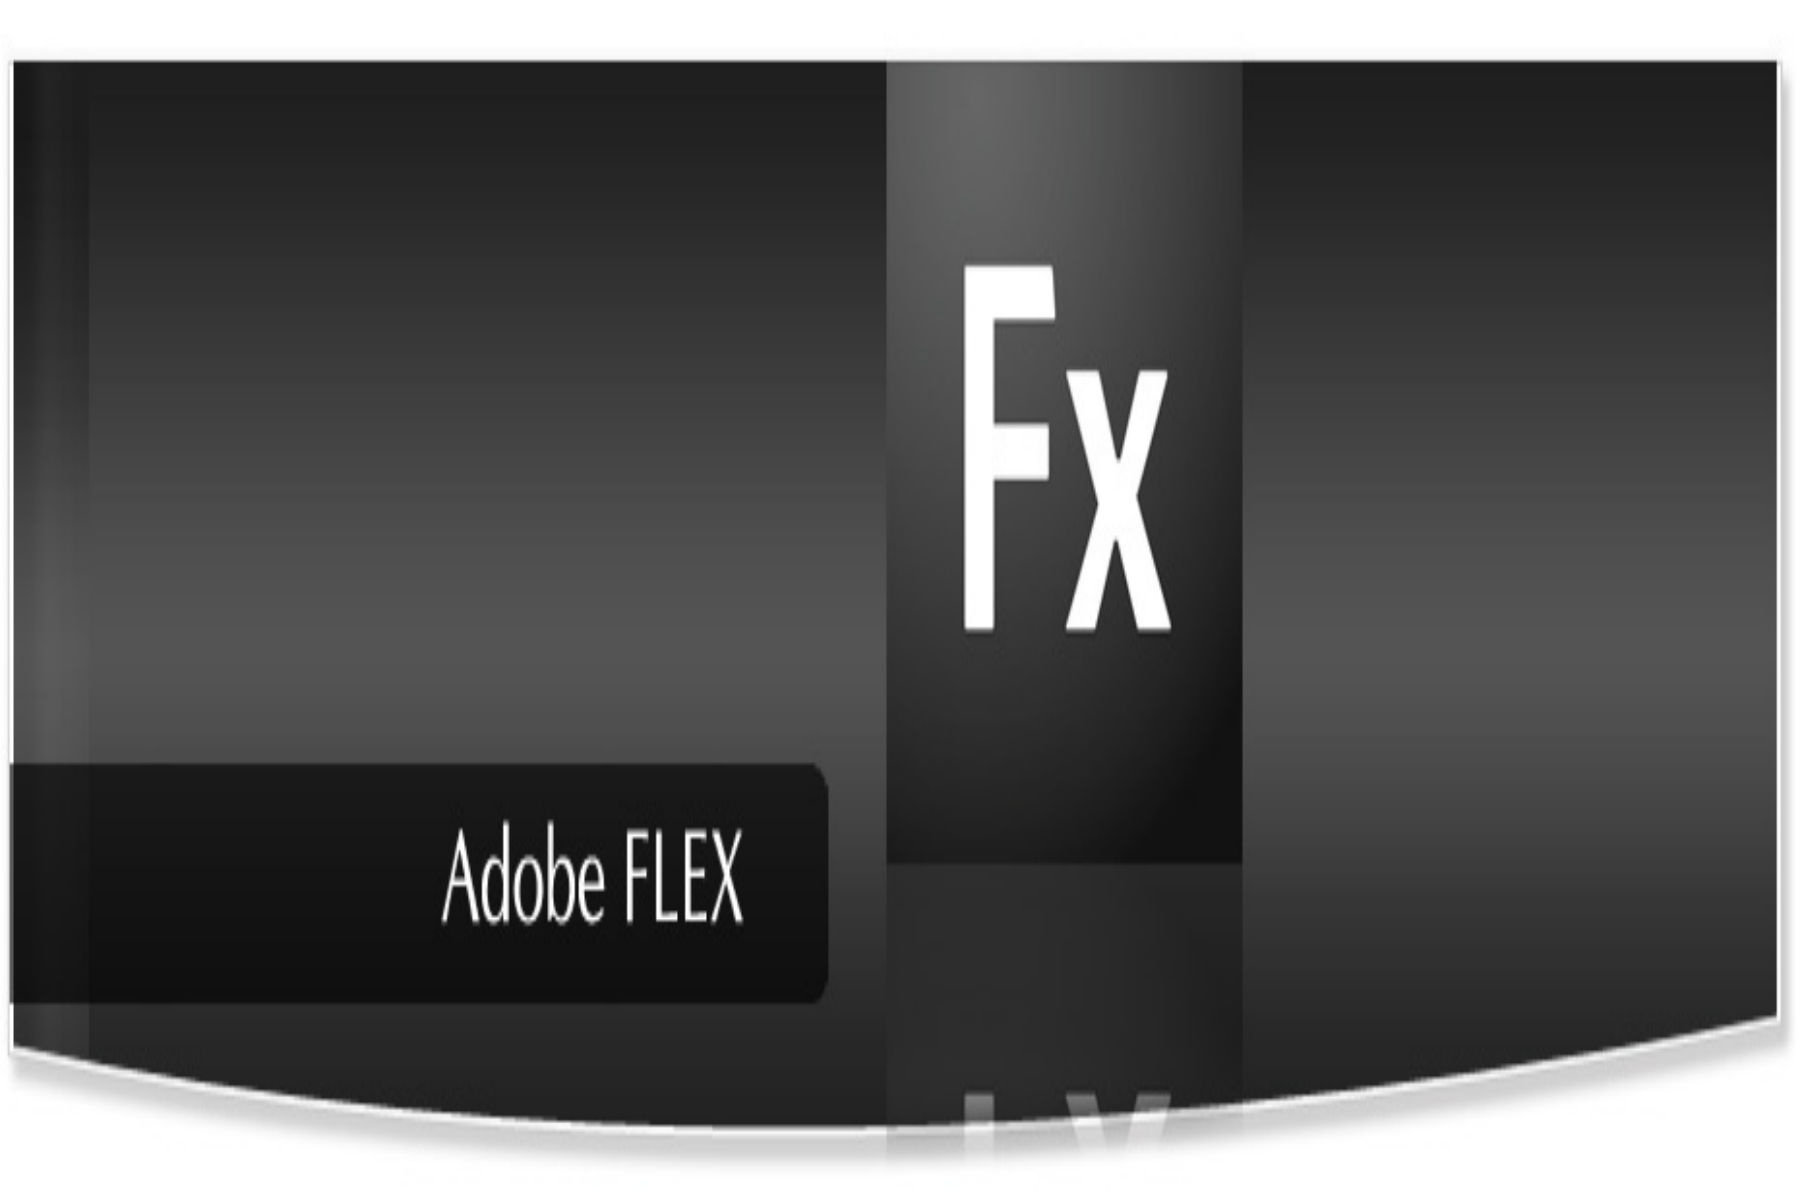 Adobe Flex Training in Chennai